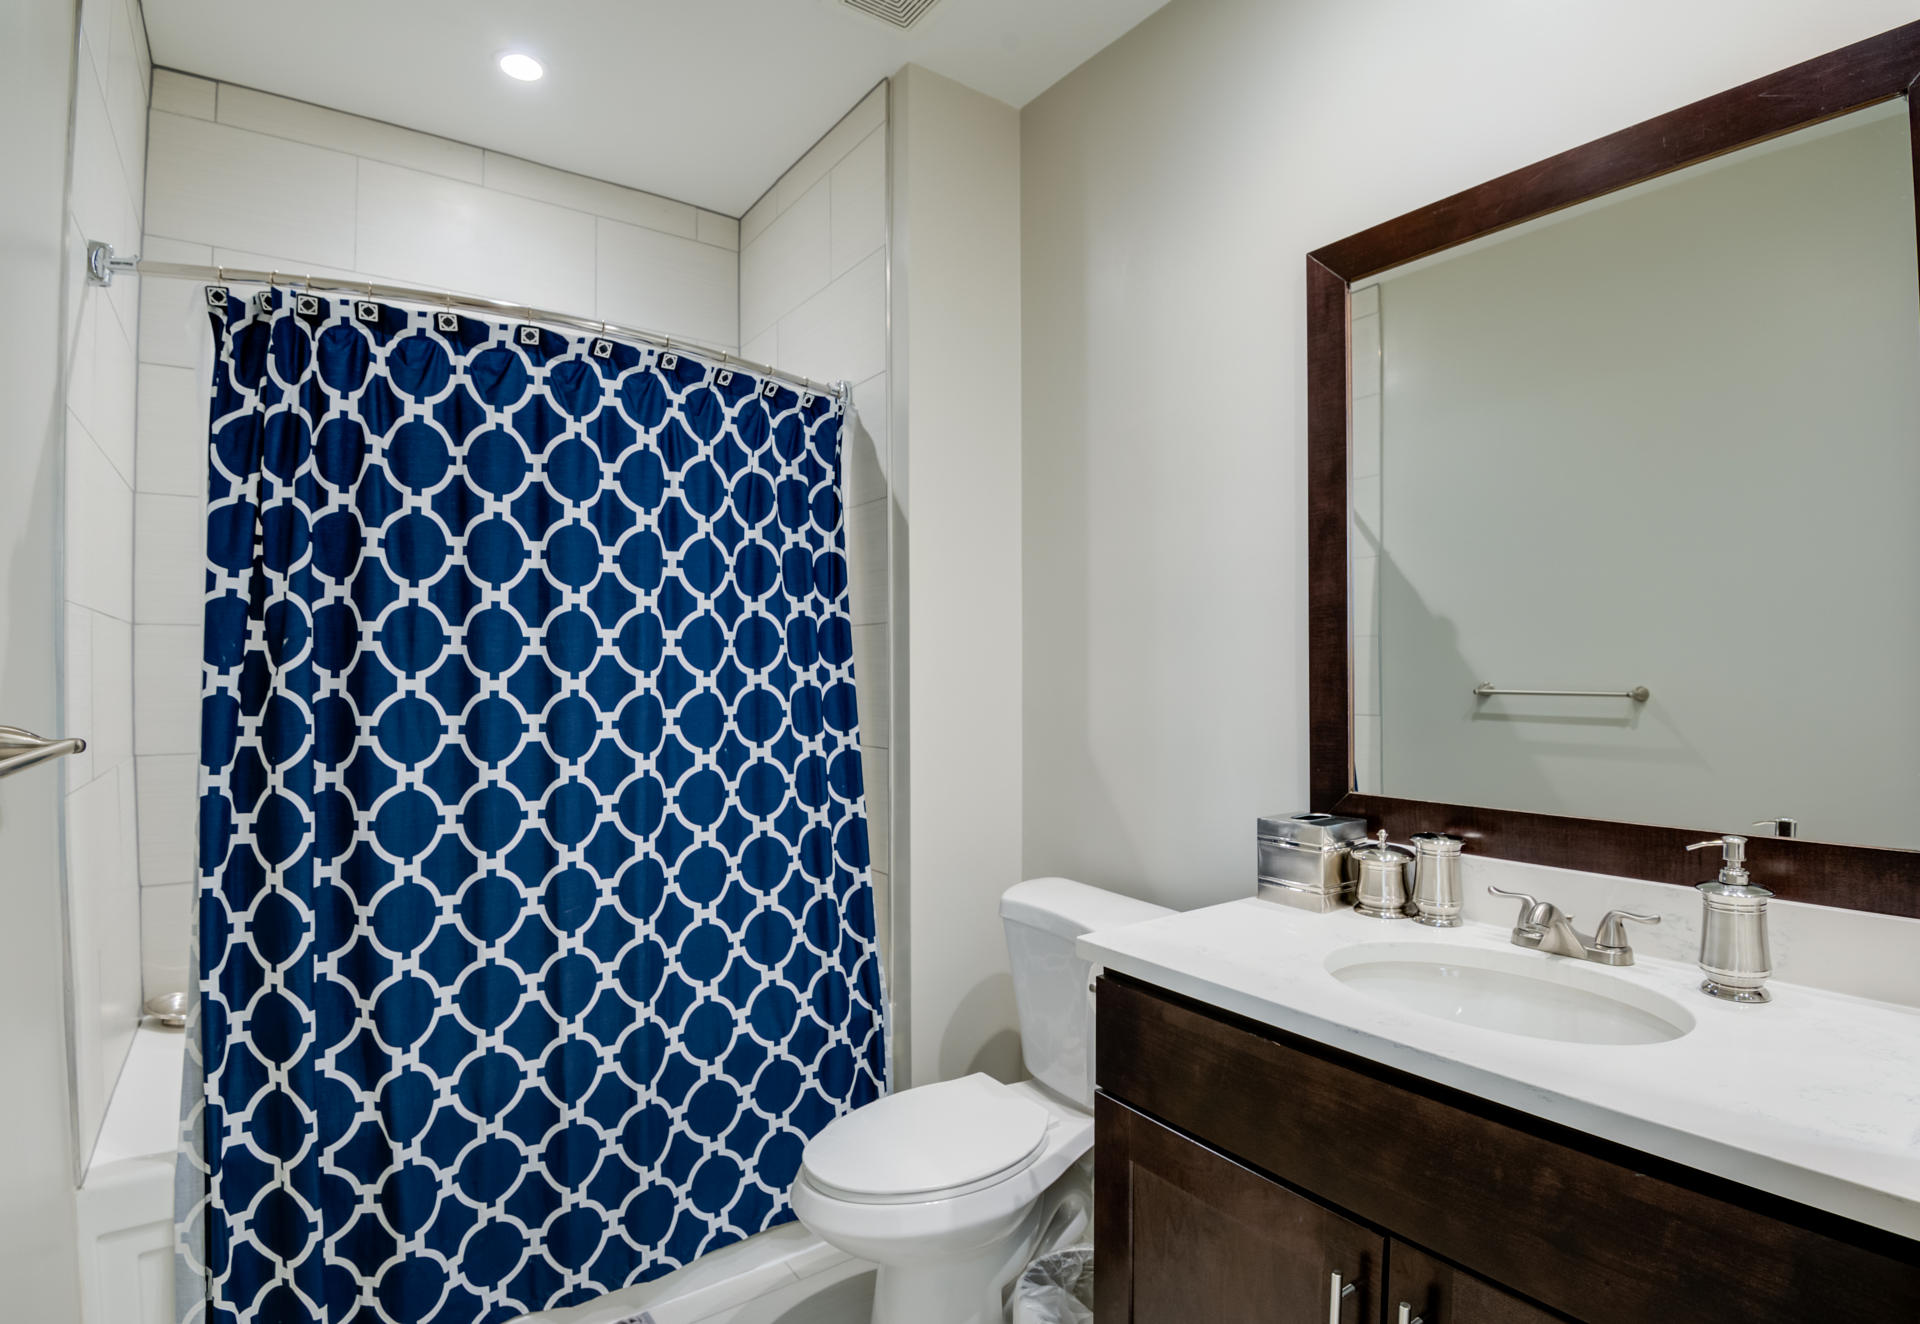 Modern bathroom features help start your day in style.